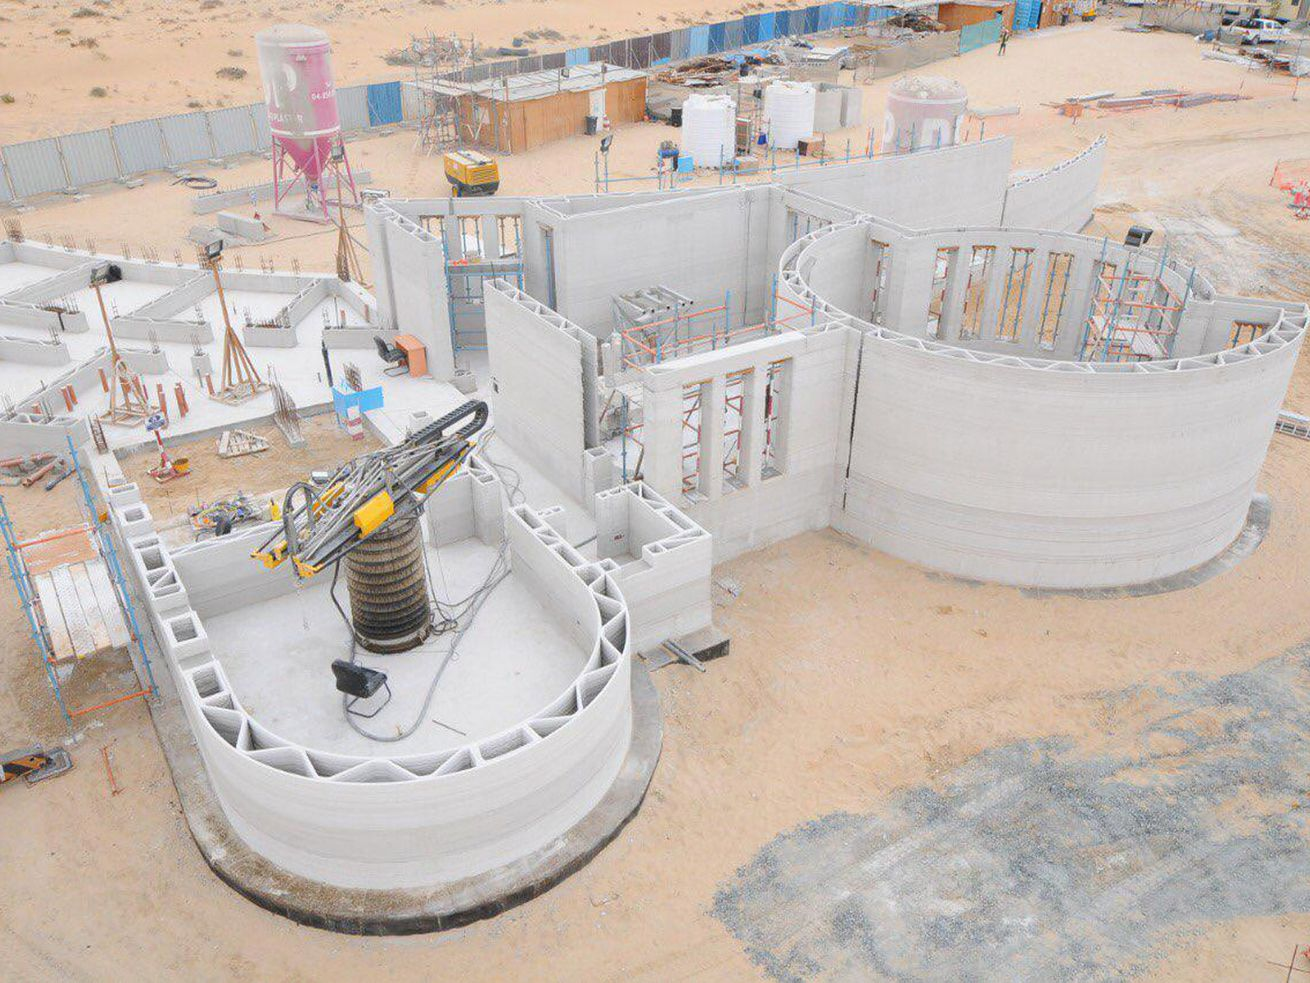 Building with two rounded sections under construction via machine extruding concrete mixture.